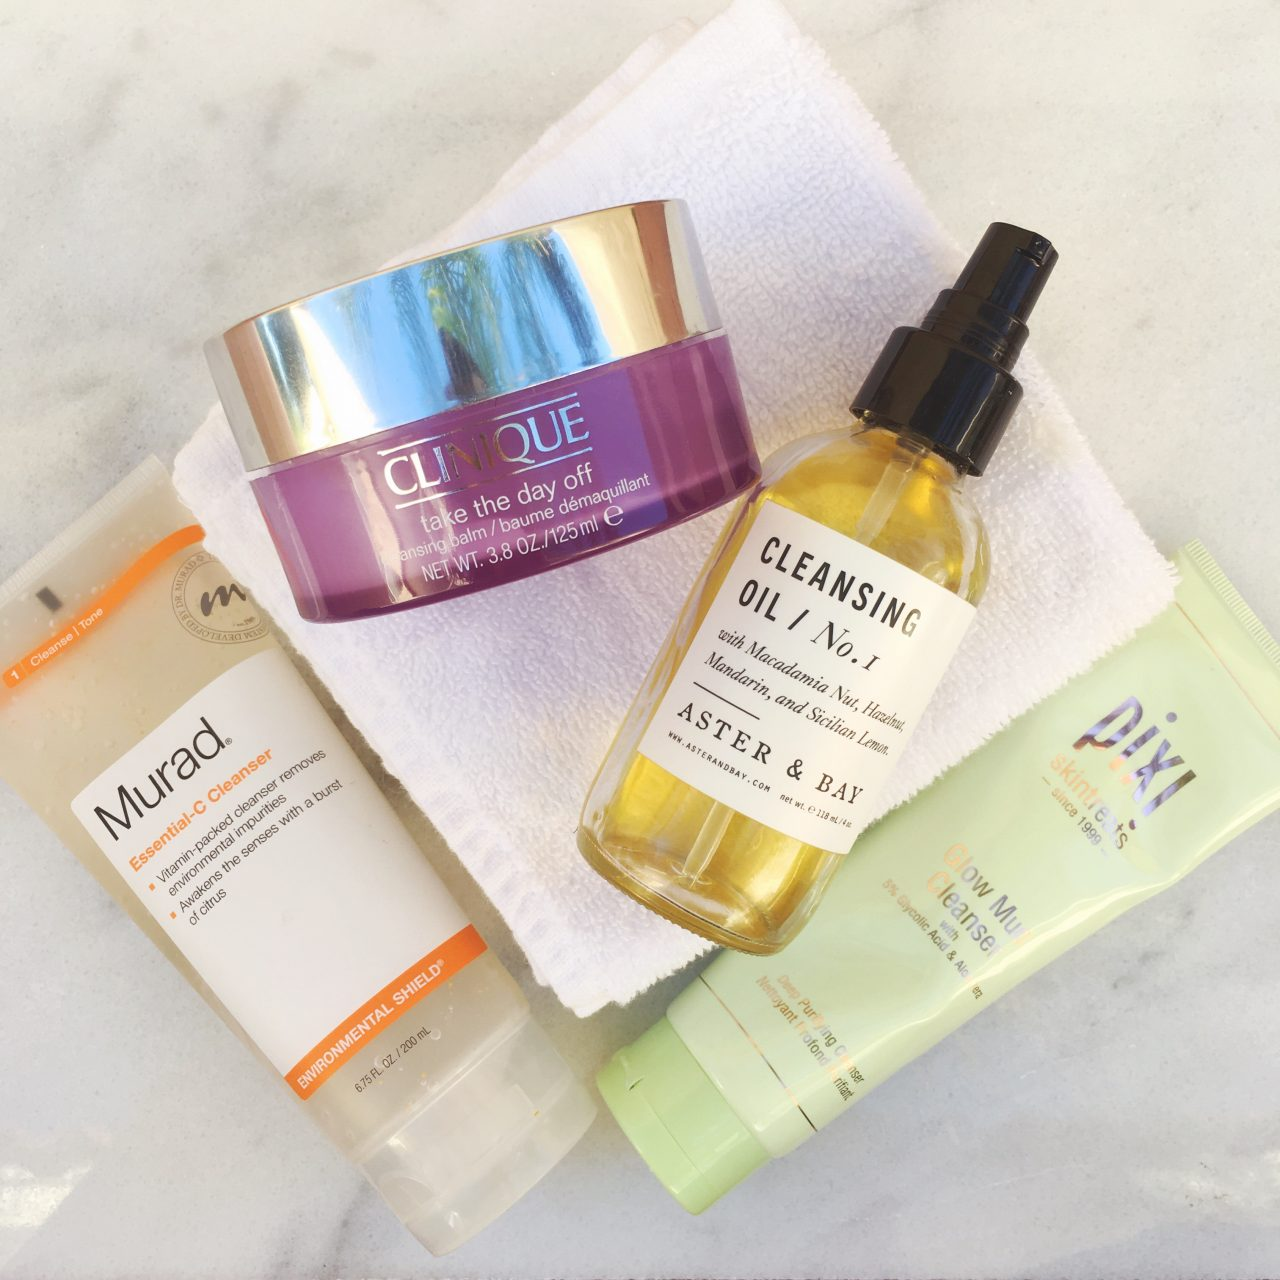 My Fave 5 Gentle But Effective Face Cleansers For Sensitive Skin Featuring Clinique Take The Day Off Balm, Aster and Bay Cleansing Oil, Pixi Glow Mud Cleanser, and Murad Essential C Cleanser | | Early 30s Skin Care | keiralennox.com